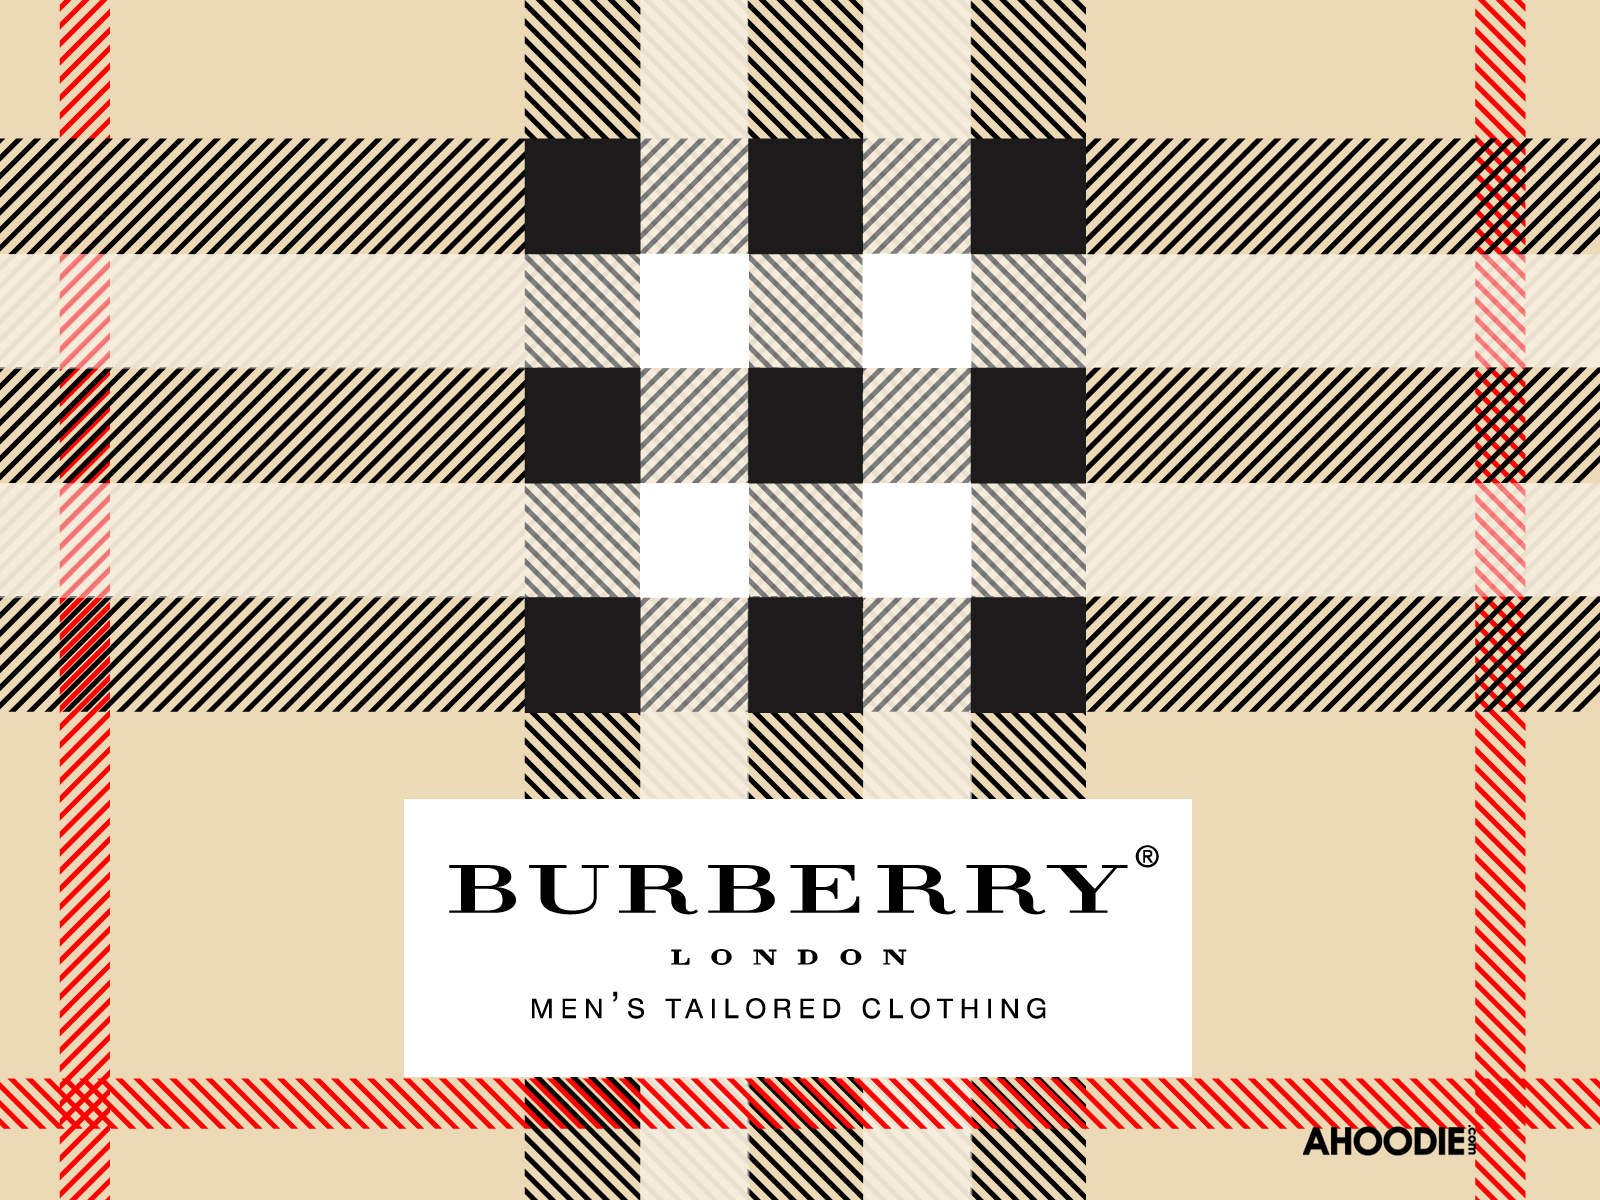 WALLPAPERS: Burberry Desktop Background Wallpaper BurberryWallpaper3